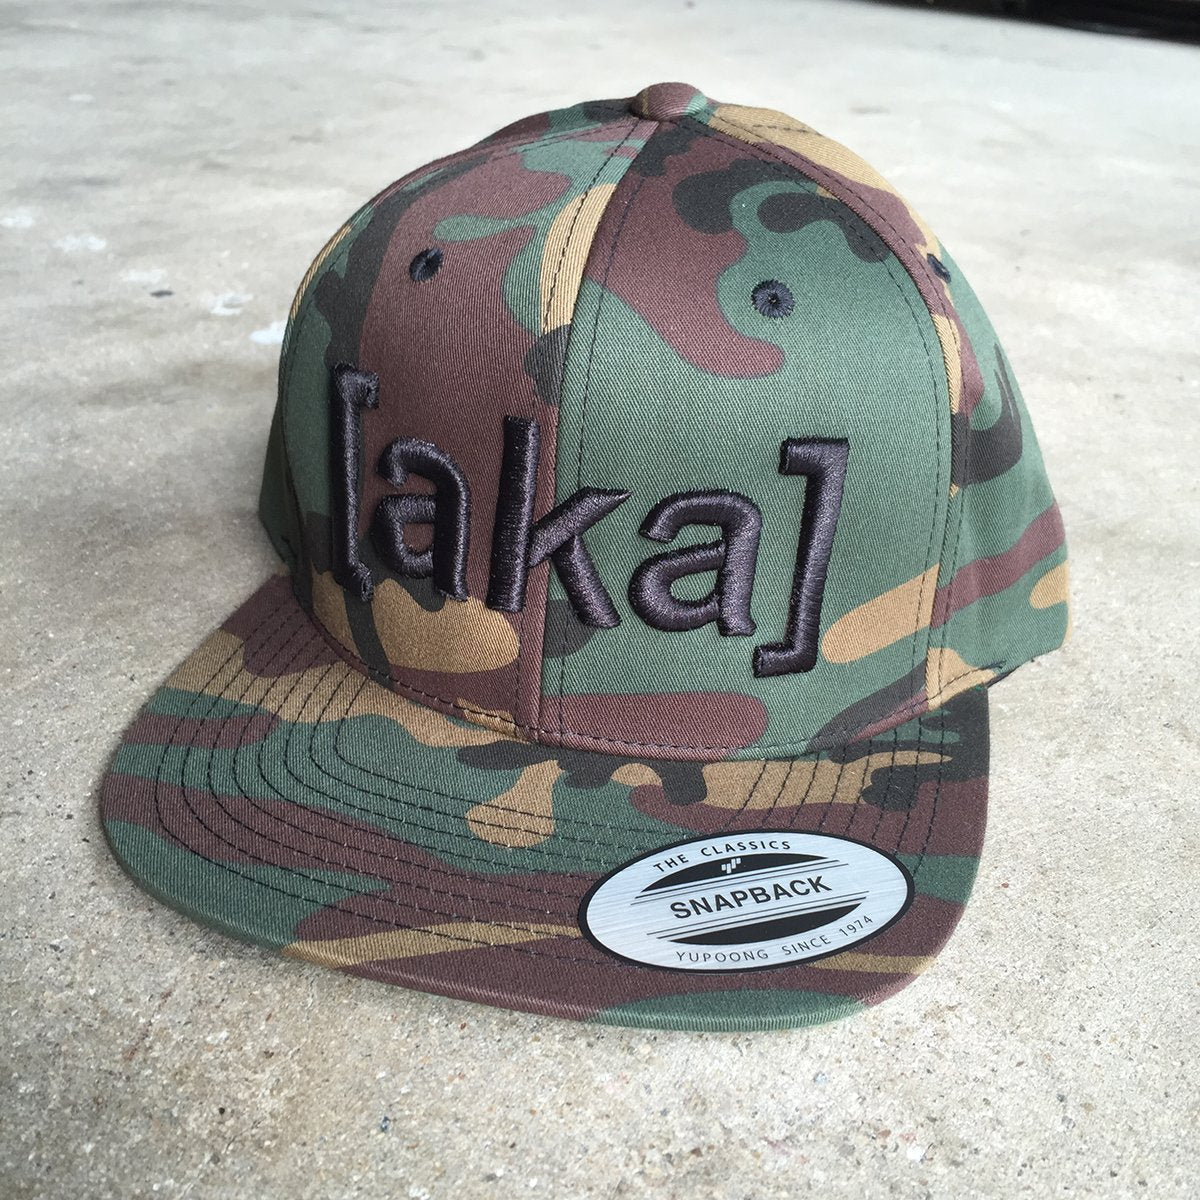 AKA Snapback Hat - Black on Camo - [aka]